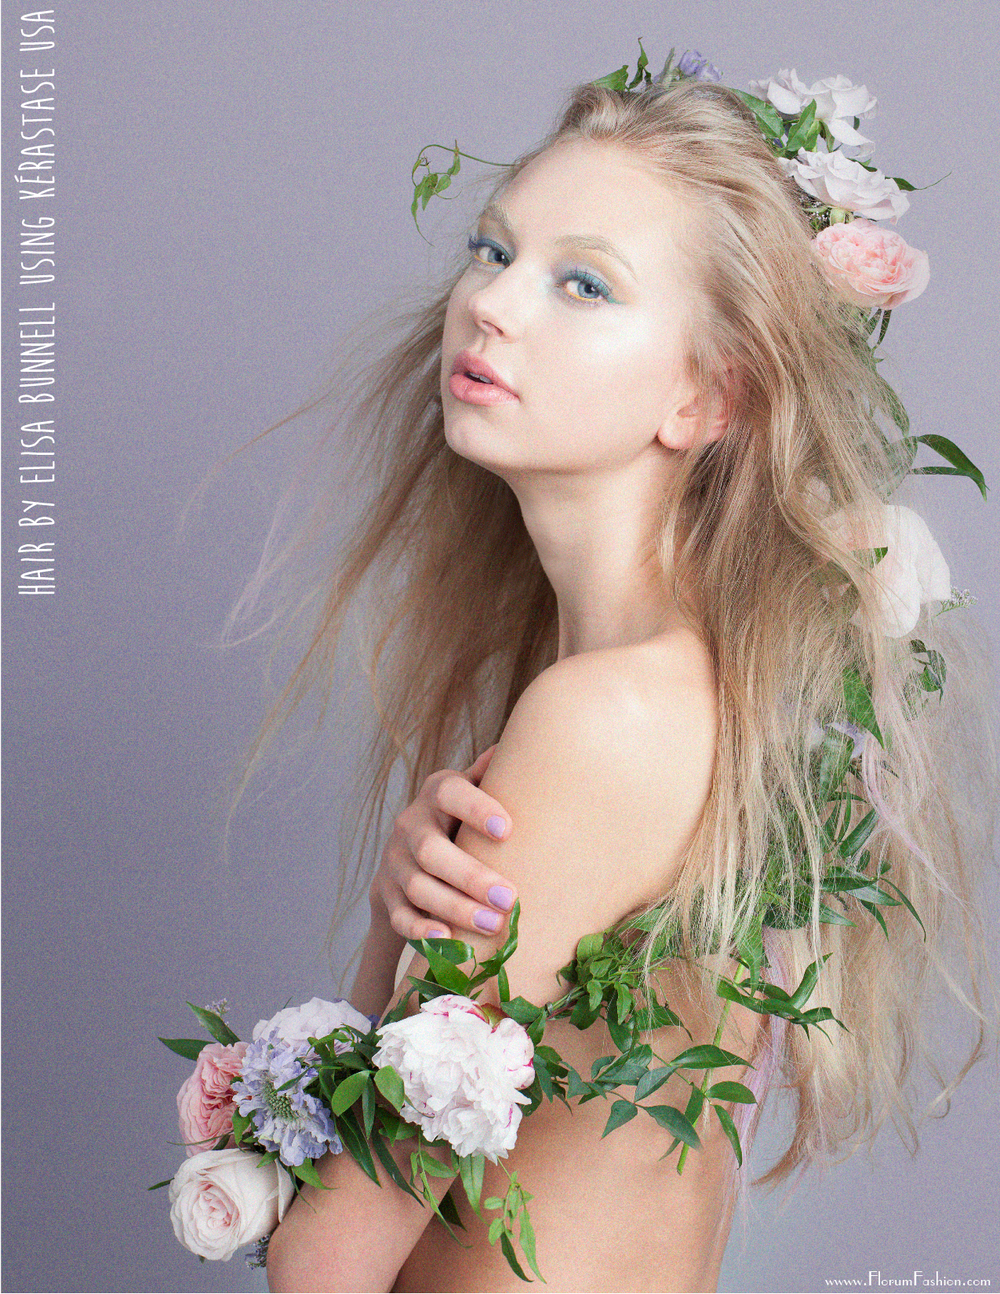 Bellezas Florales Webitorial - Florum Fashion Magazine - March 2016 - Natural Beauty - Vertical Image - organic Beauty page 5.png